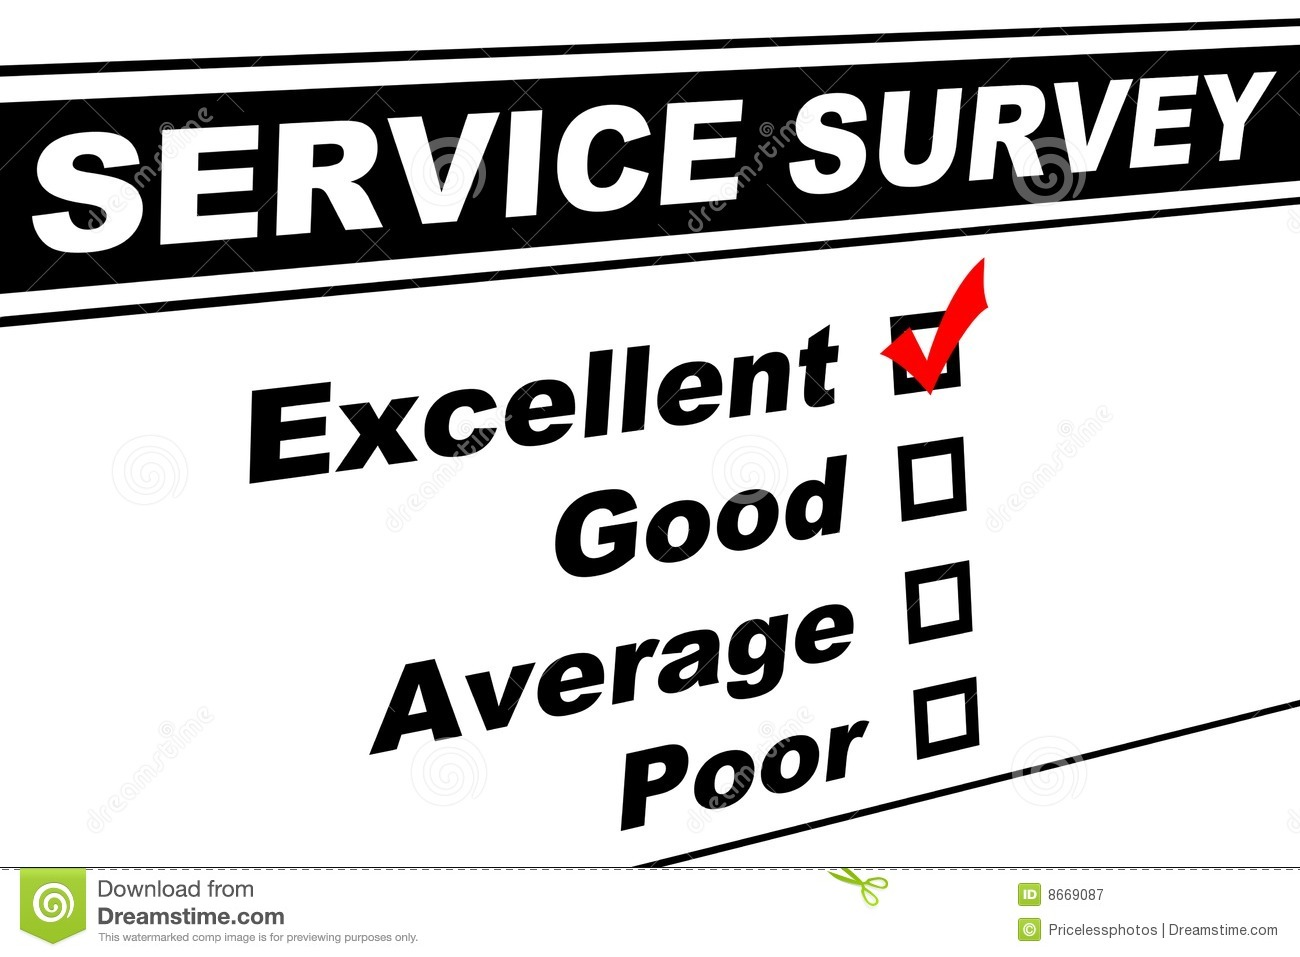 Excellent Customer Service Survey  Definition Of Excellent Customer Service